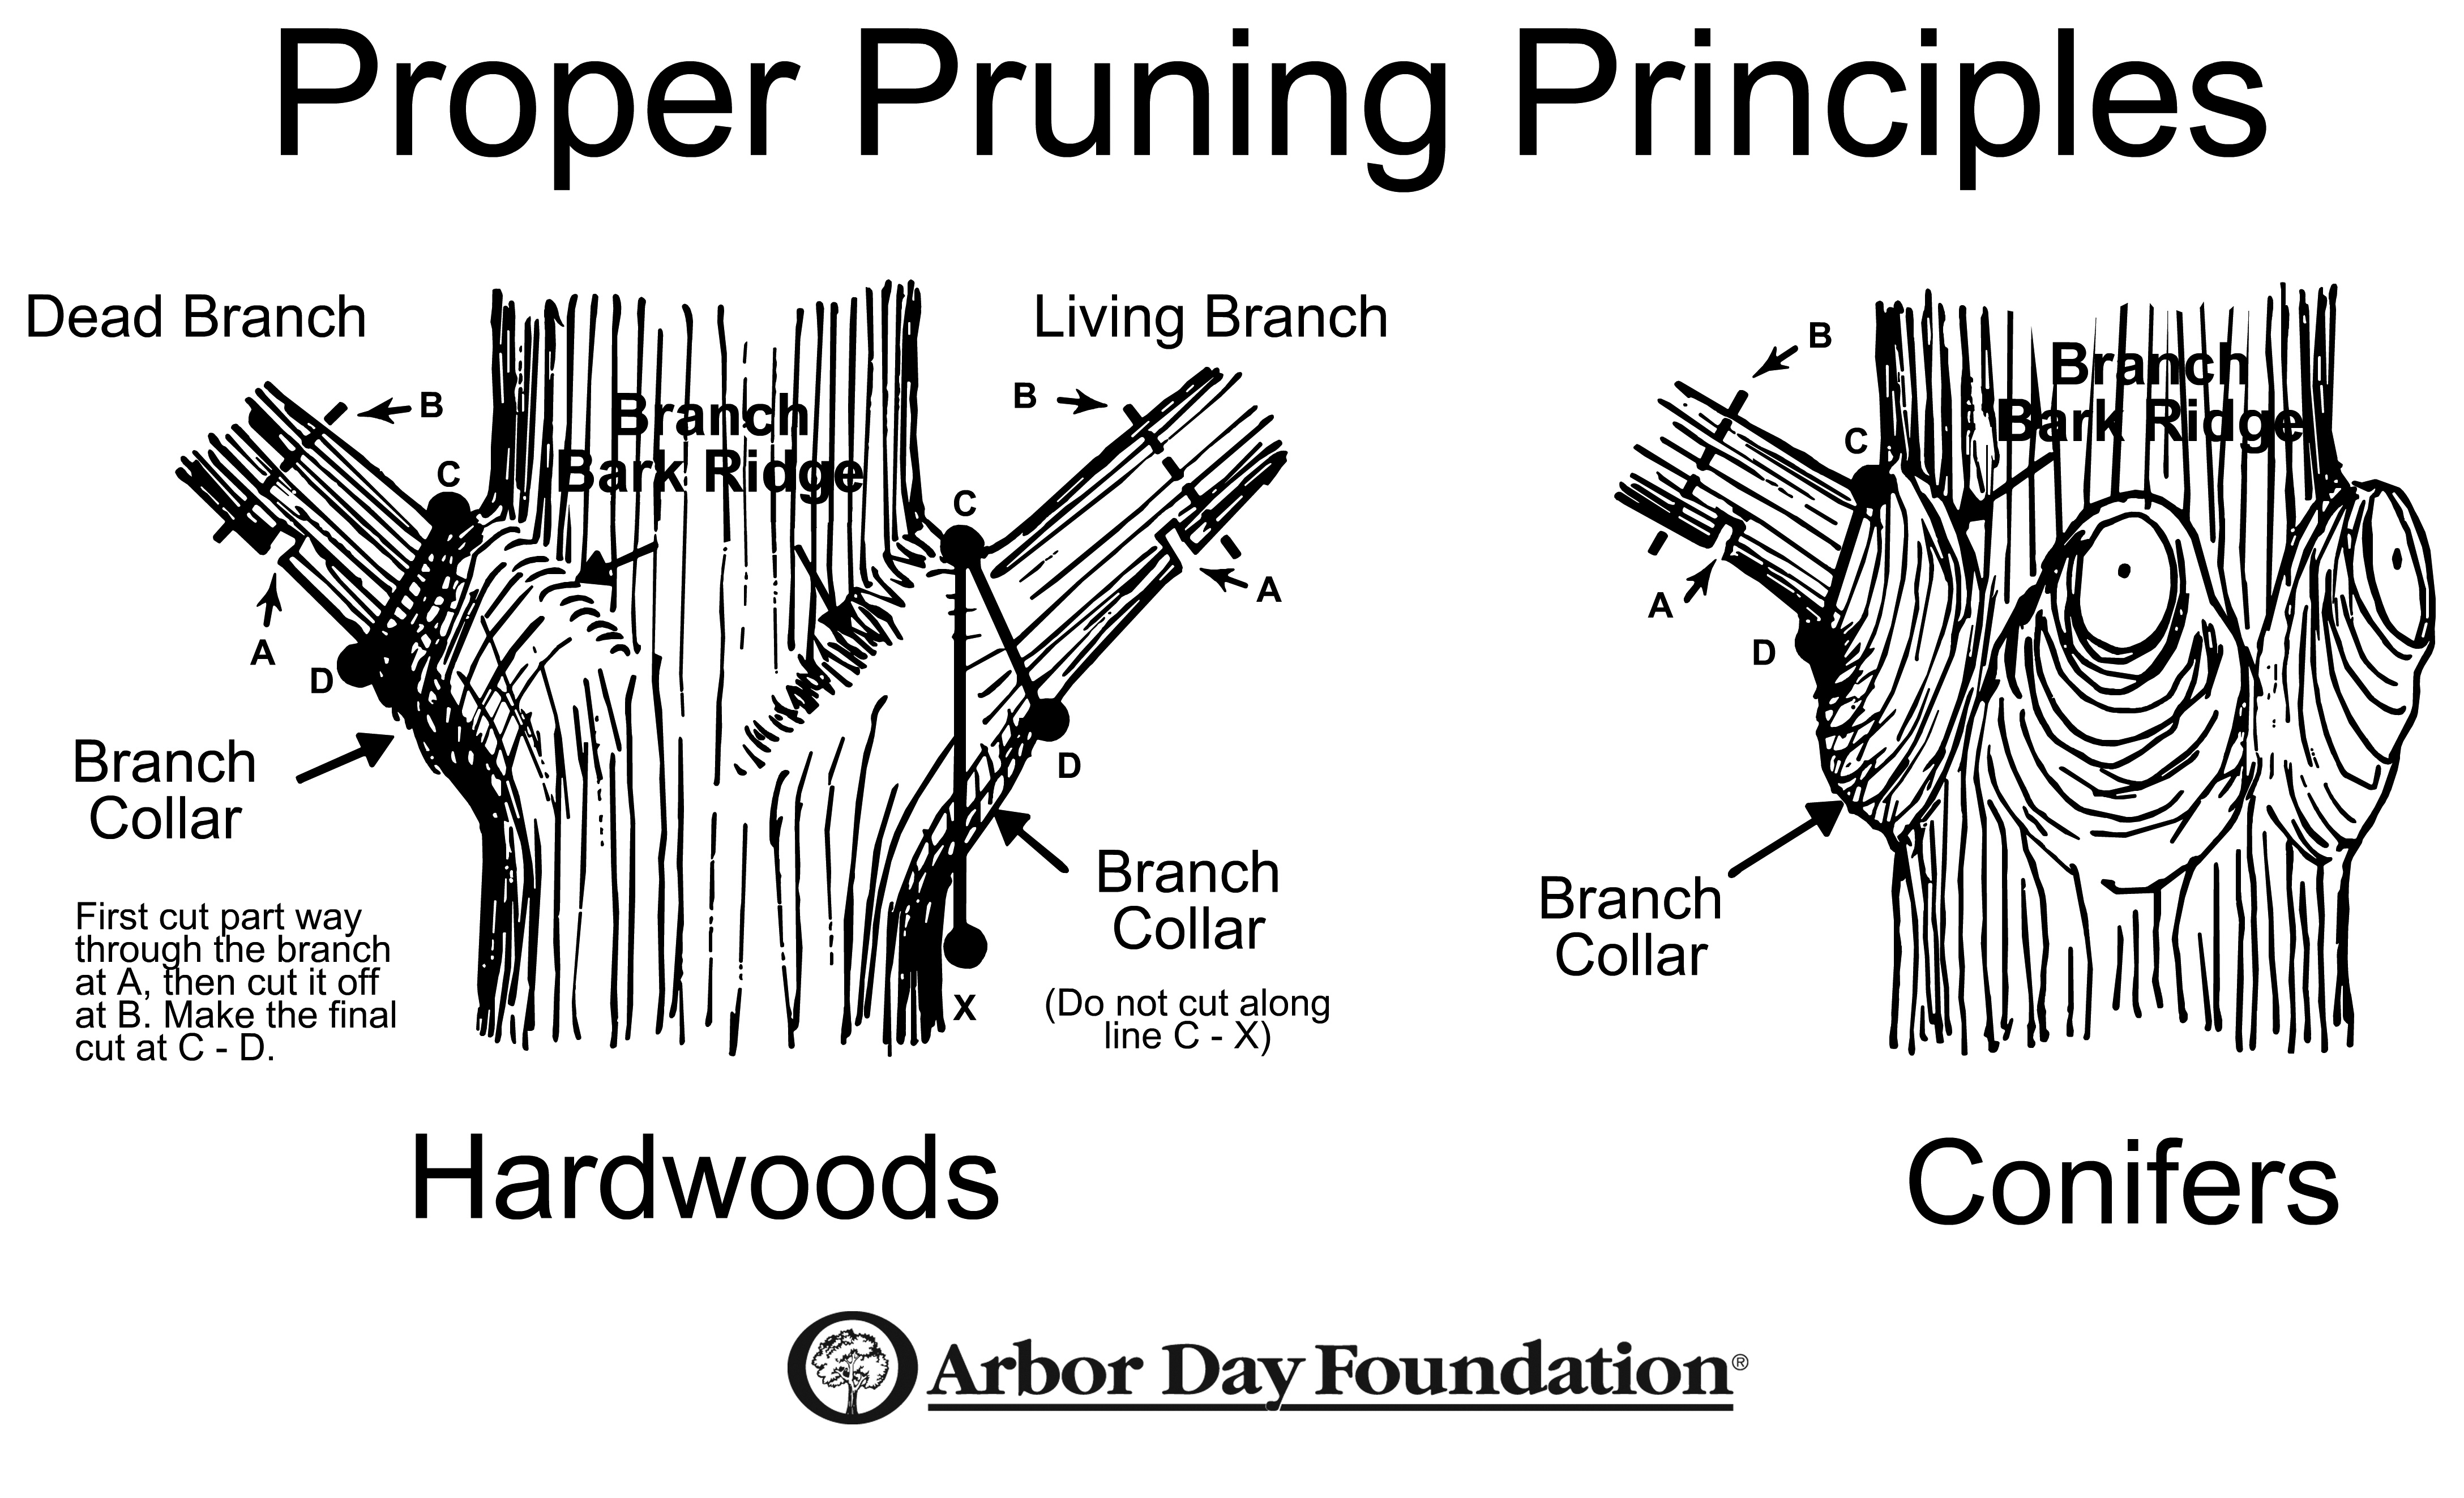 how to prune an apple tree diagram central nervous system labeled and shrub pruning guide fairview garden center